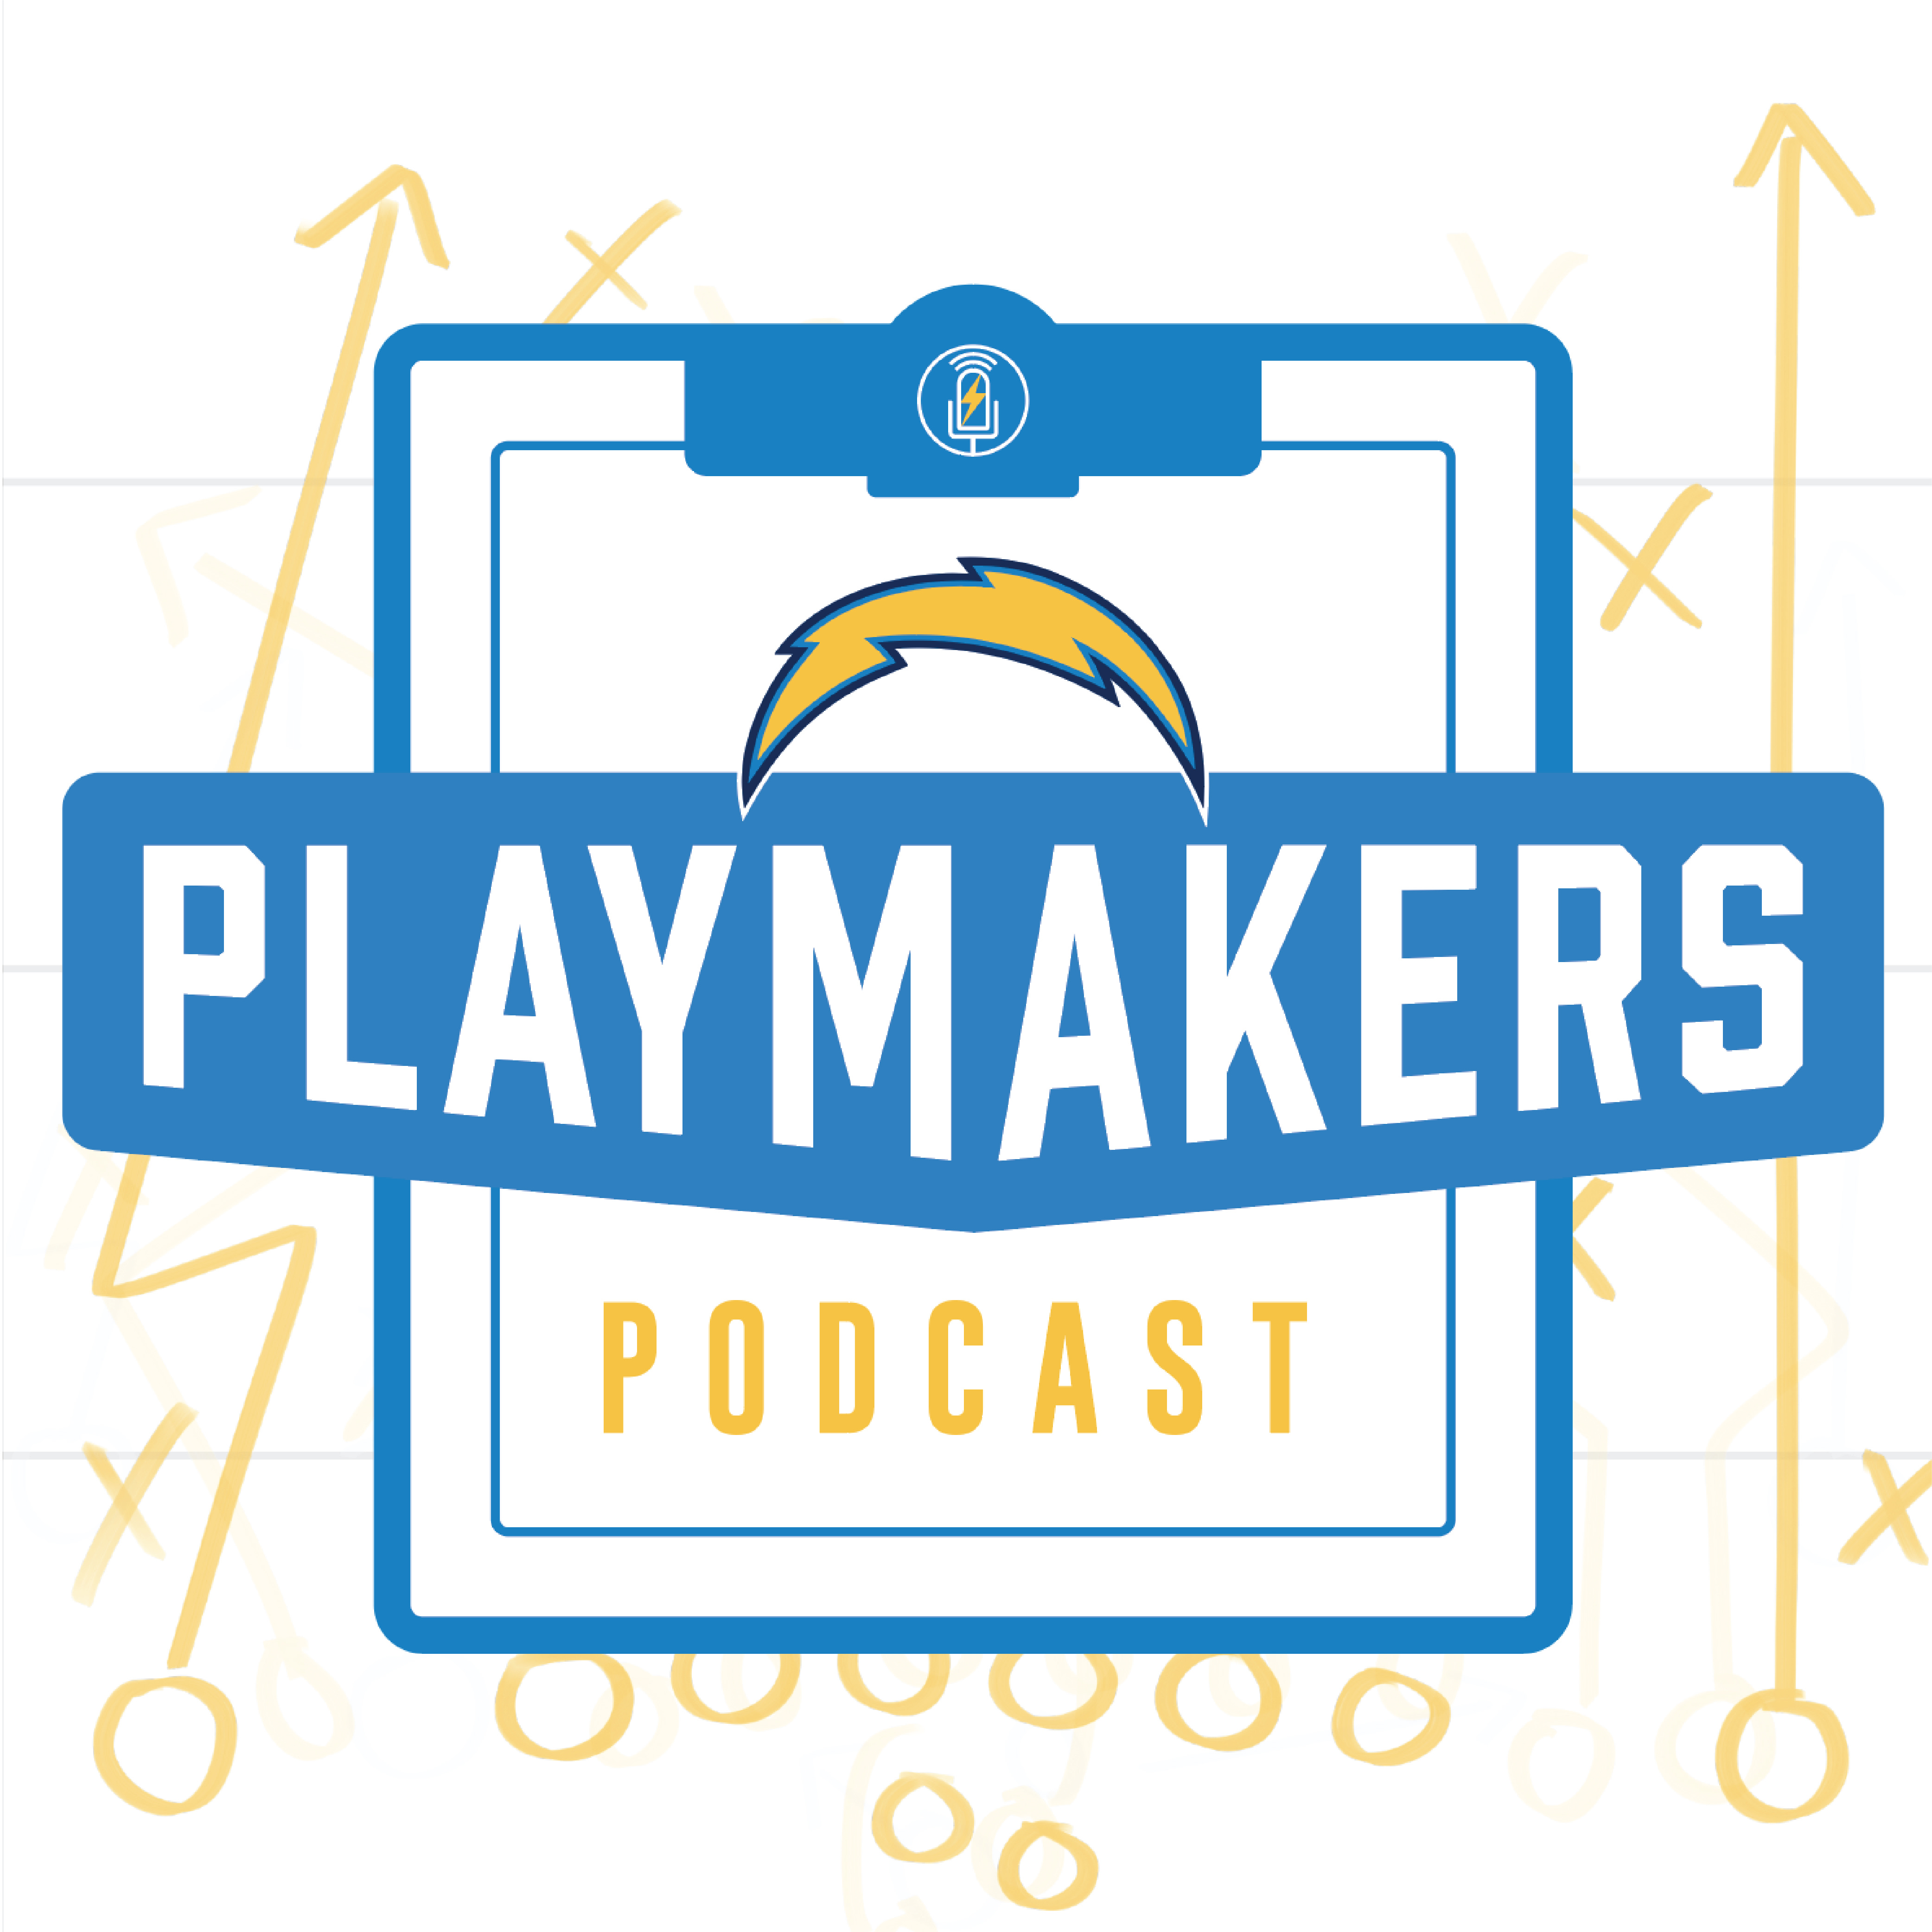 Playmakers Podcast